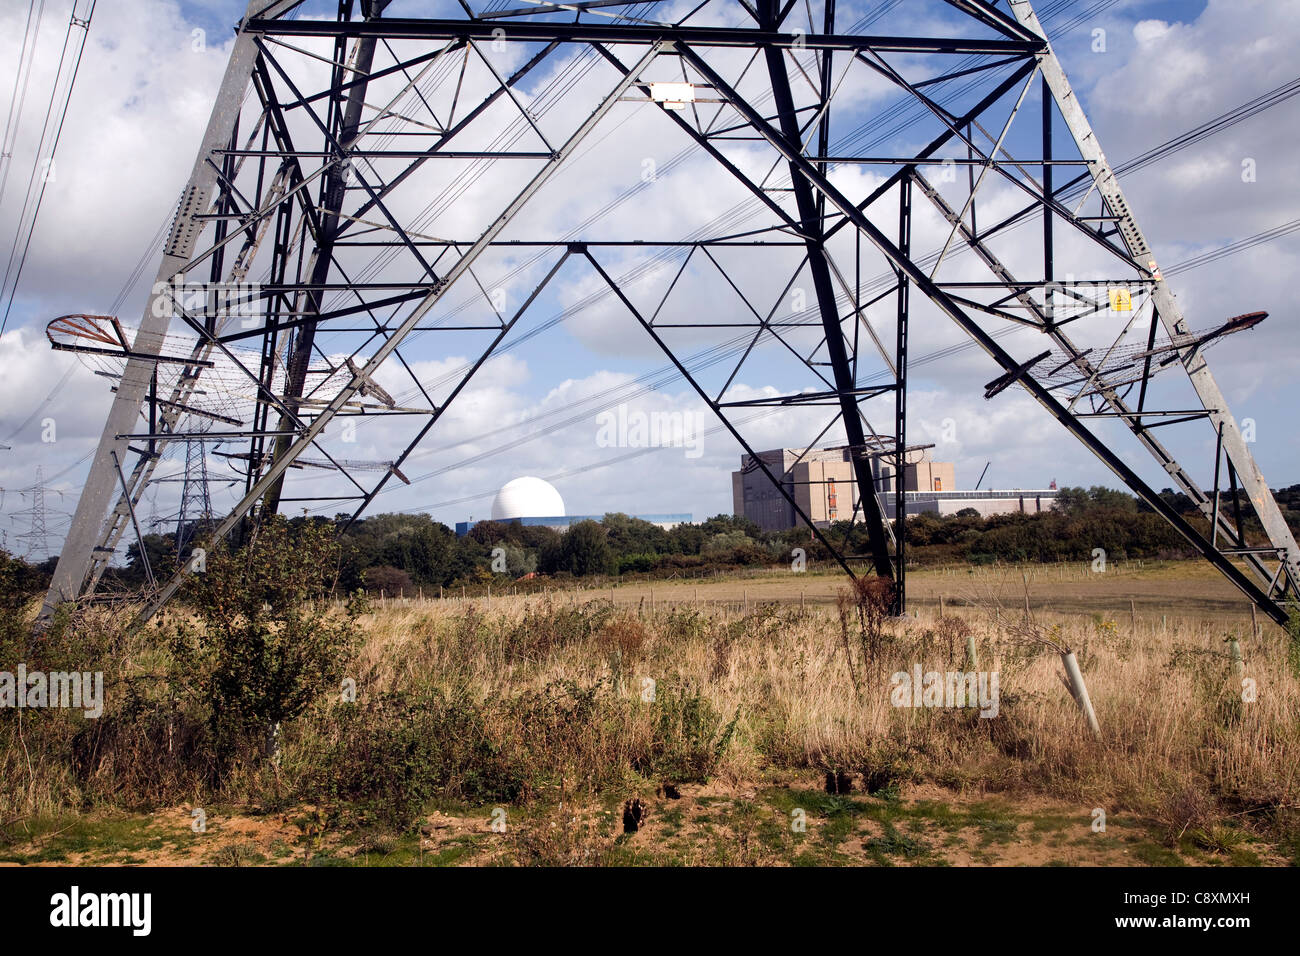 Electricity power lines running from the nuclear power station, Sizewell, Suffolk, England - Stock Image